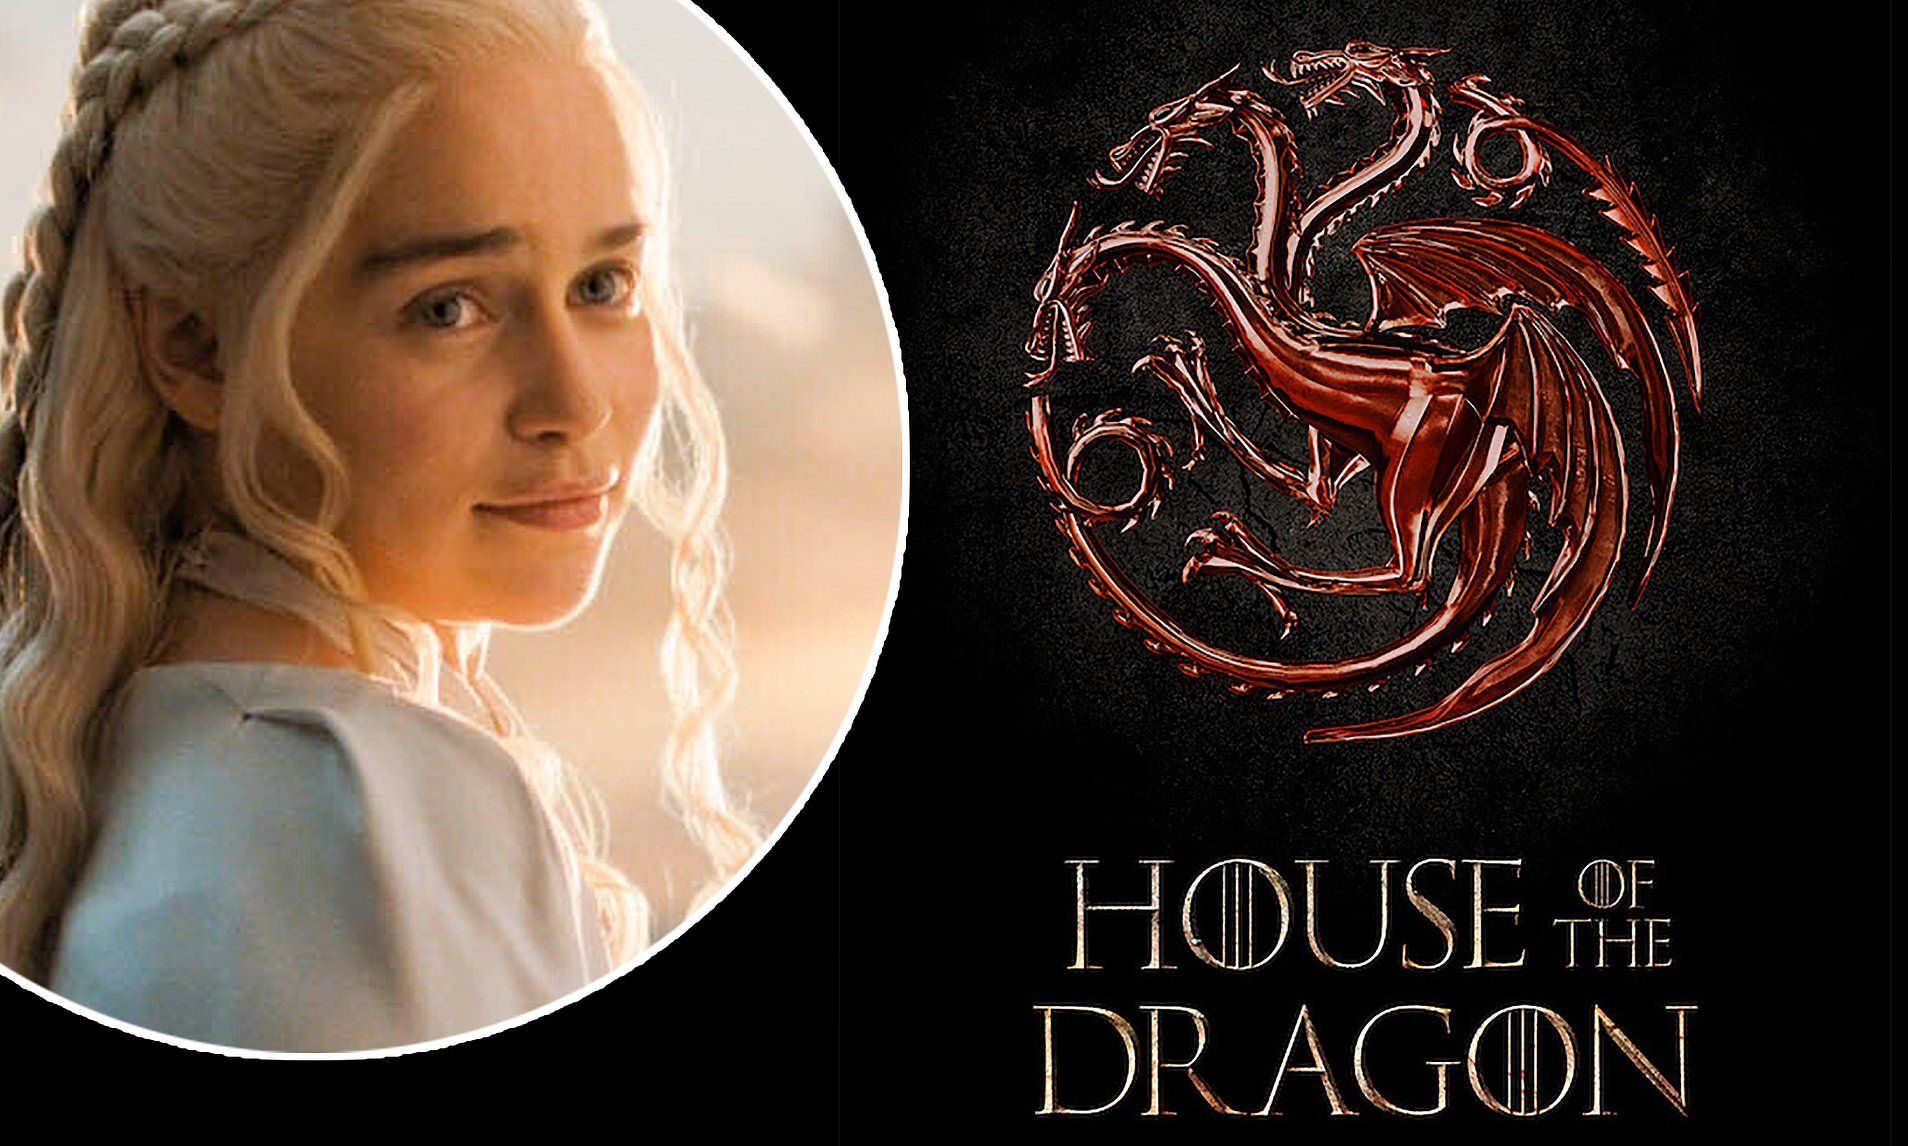 Game Of Thrones Prequel House Of The Dragon Debuting In 2022 On Hbo In 2020 Game Of Thrones Prequel Hbo Game Of Thrones